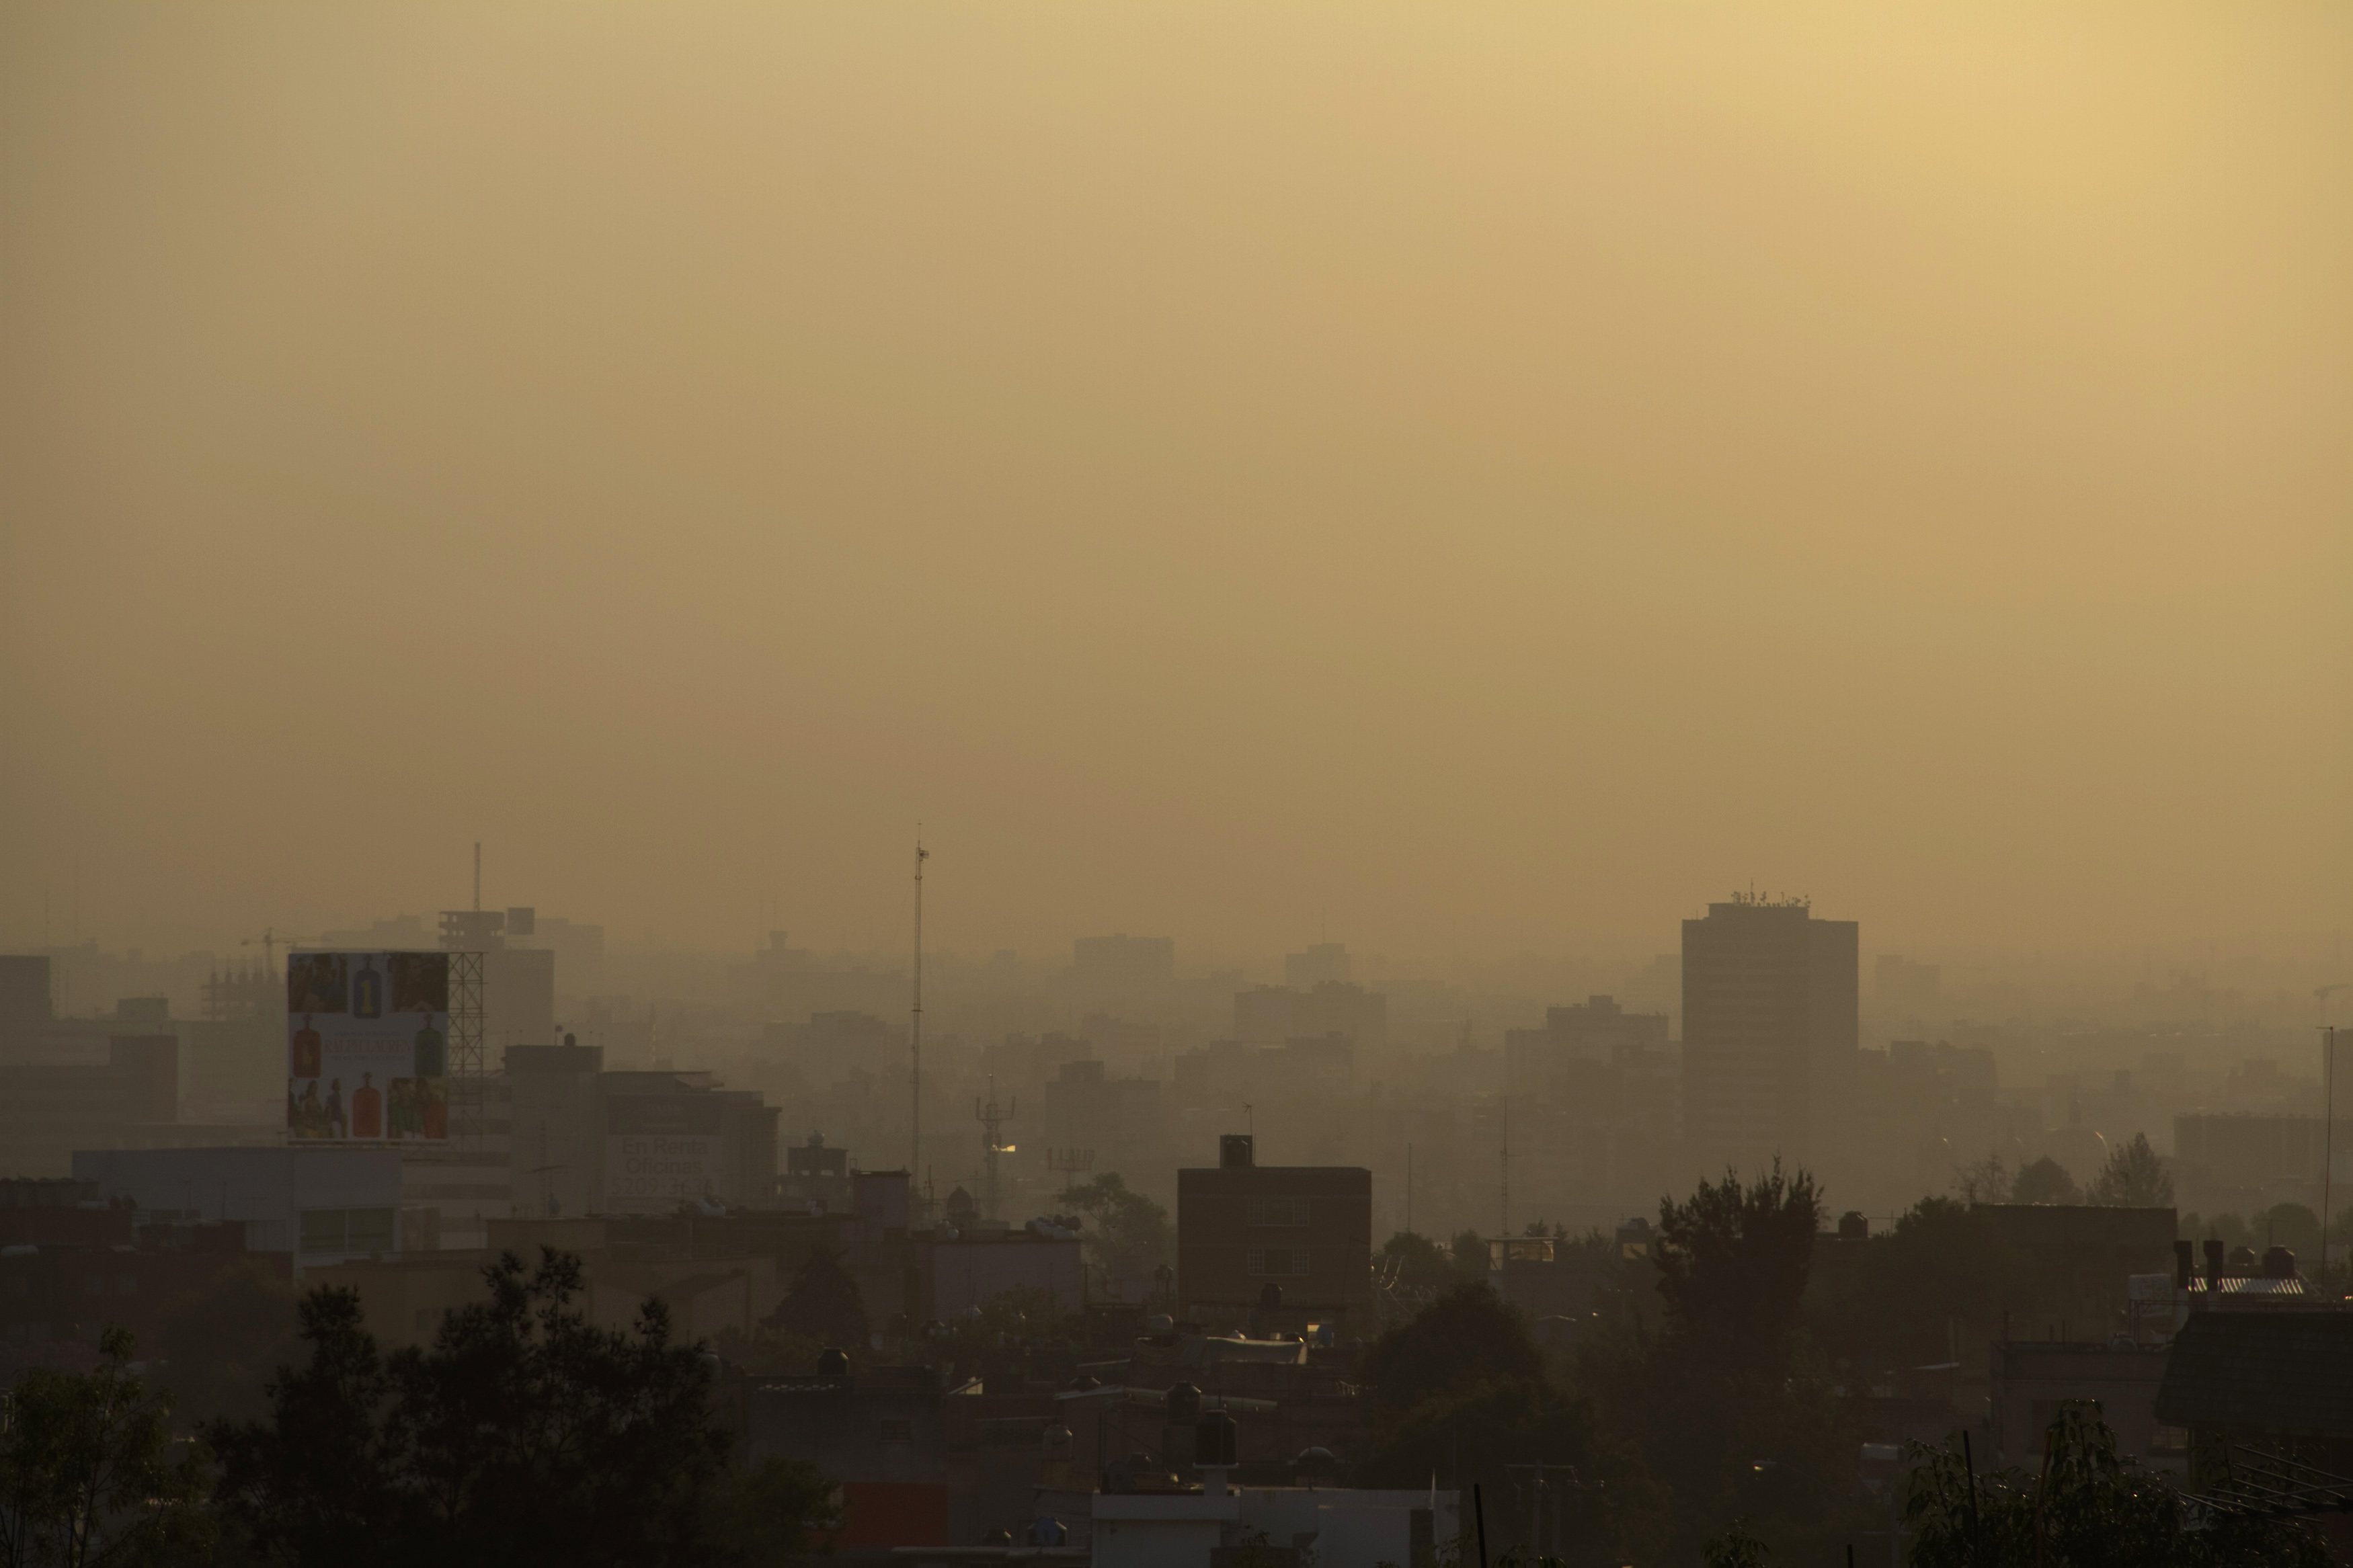 Cities are prohibiting cars to clean up the air—but a study of Mexico City suggests it may not work